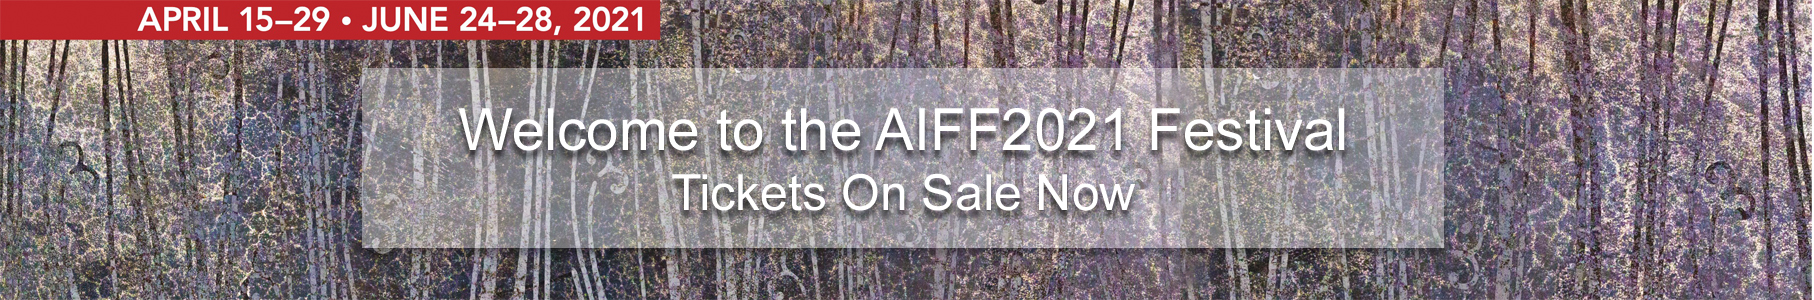 AIFF2021 Festival  (VIRTUAL: April 15-29; LIVE: June 24-28)